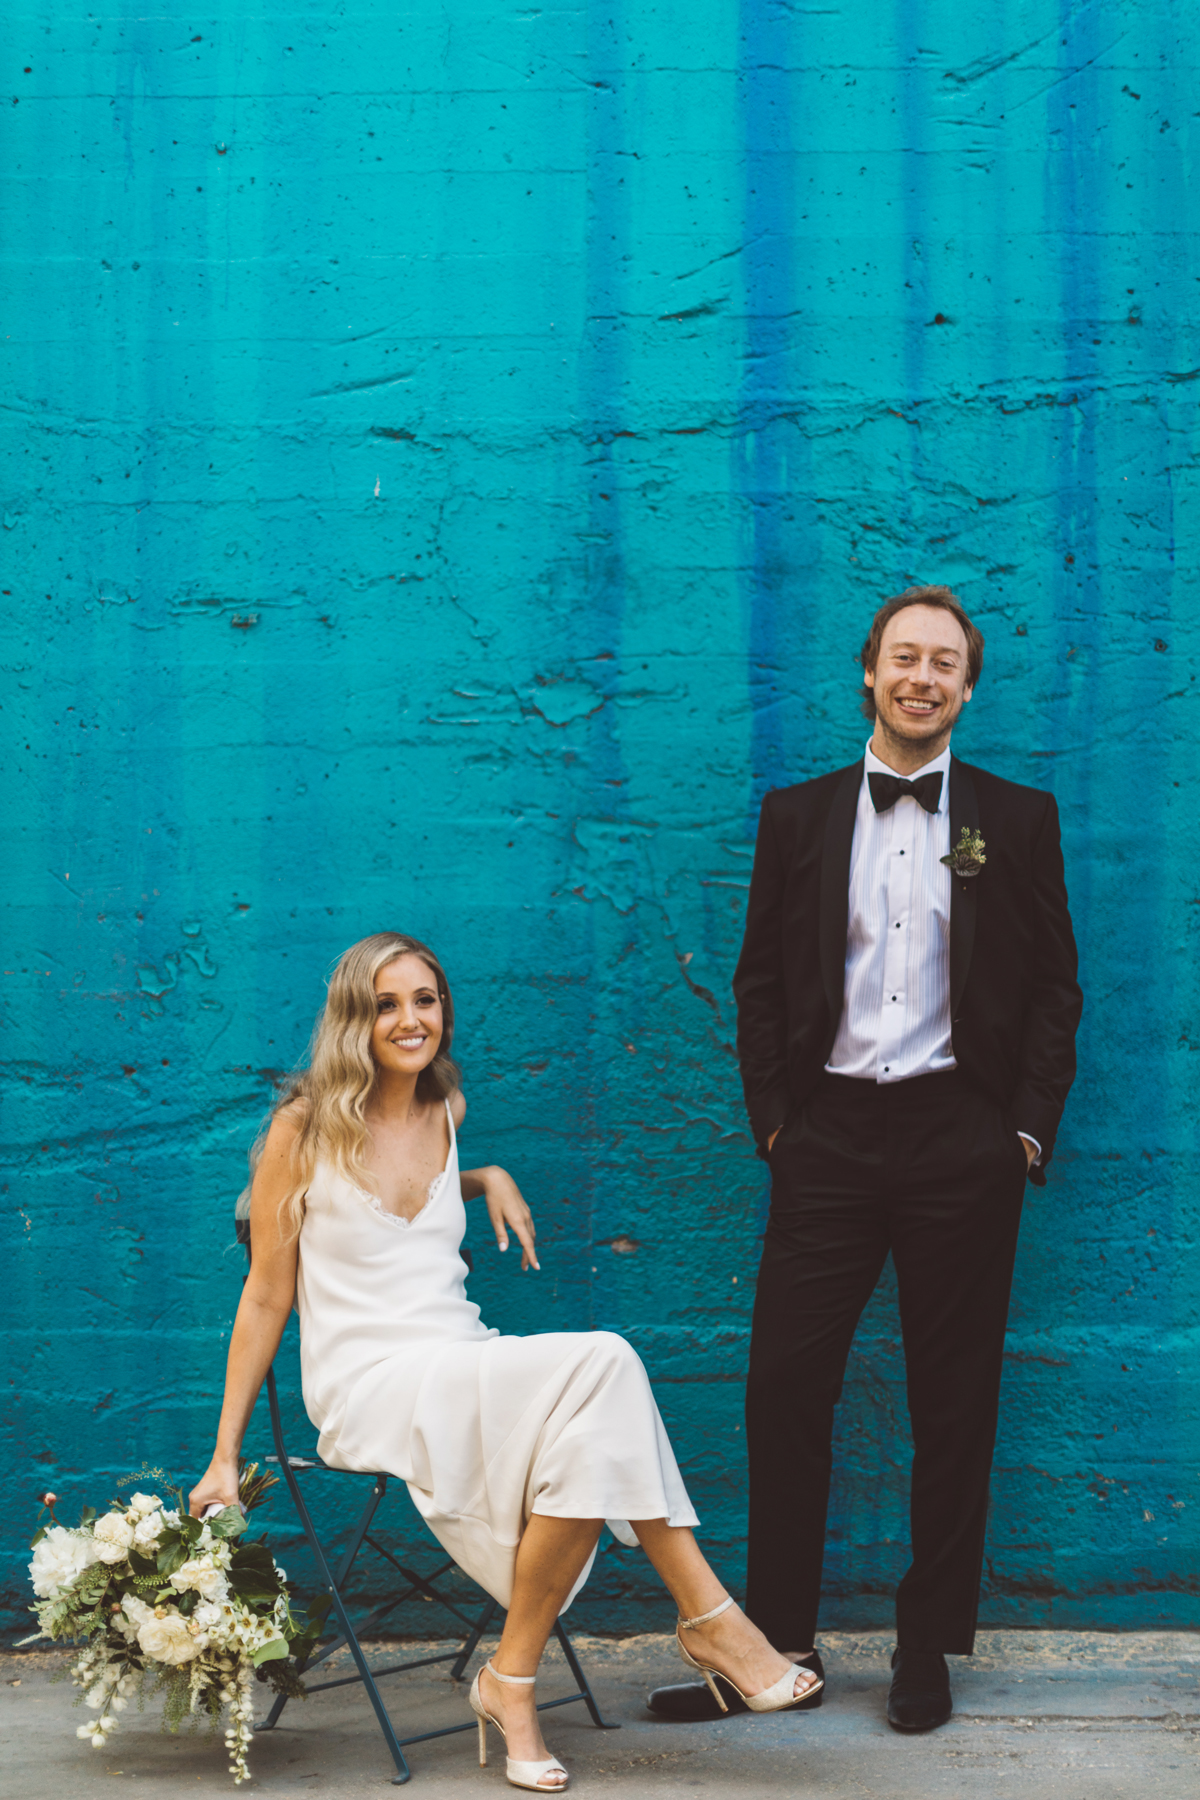 kaily matt wedding los angeles couple in front of blue wall